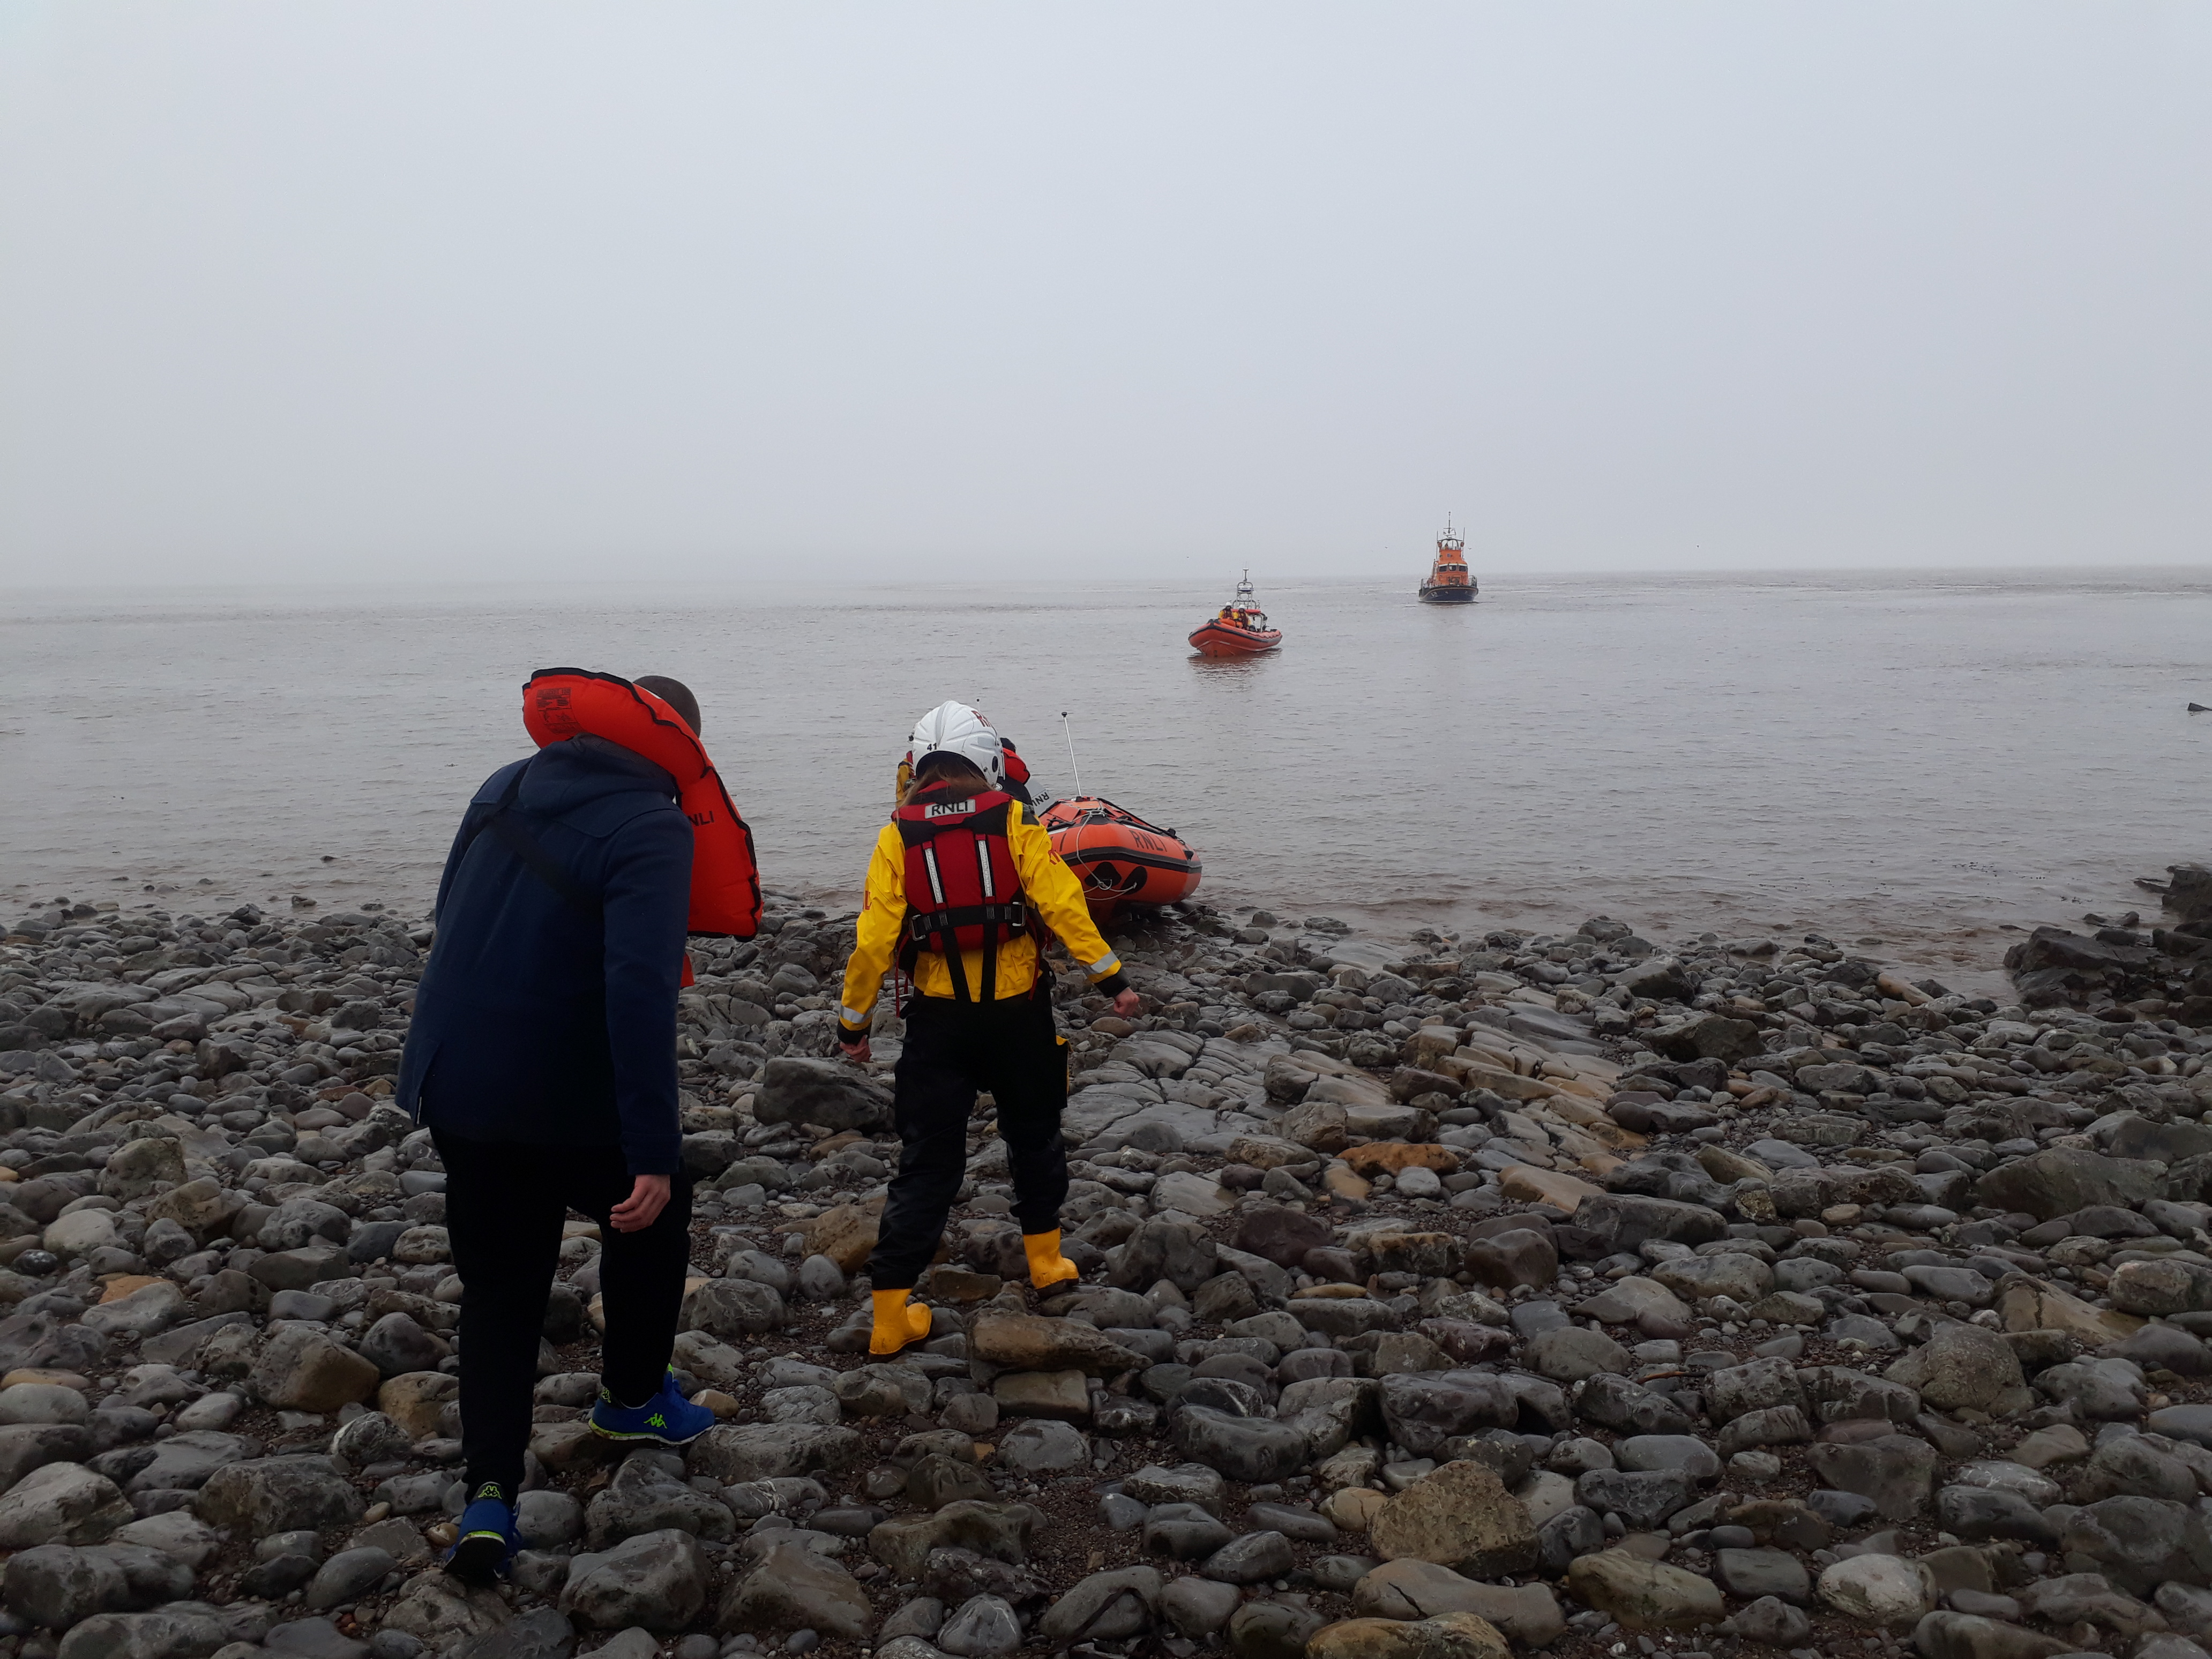 Three sailors have been found off Flat Holm Island after an extensive search this morning (Thursday 21 March) involving five RNLI lifeboats and HM Coastguard 187 helicopter.